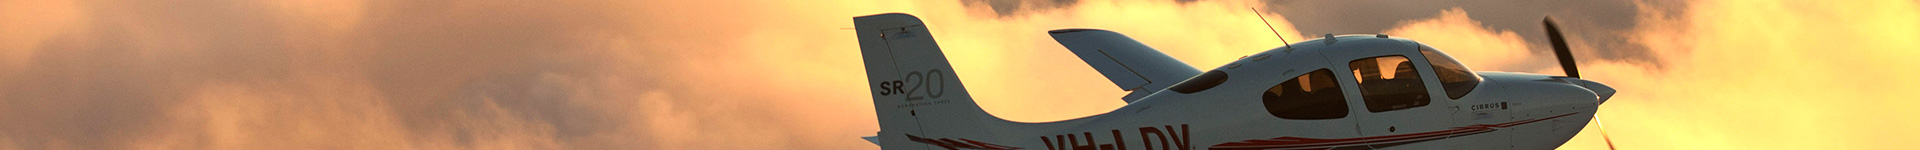 https://angelflightnz.co.nz/uploads/images/plane-banner.jpg